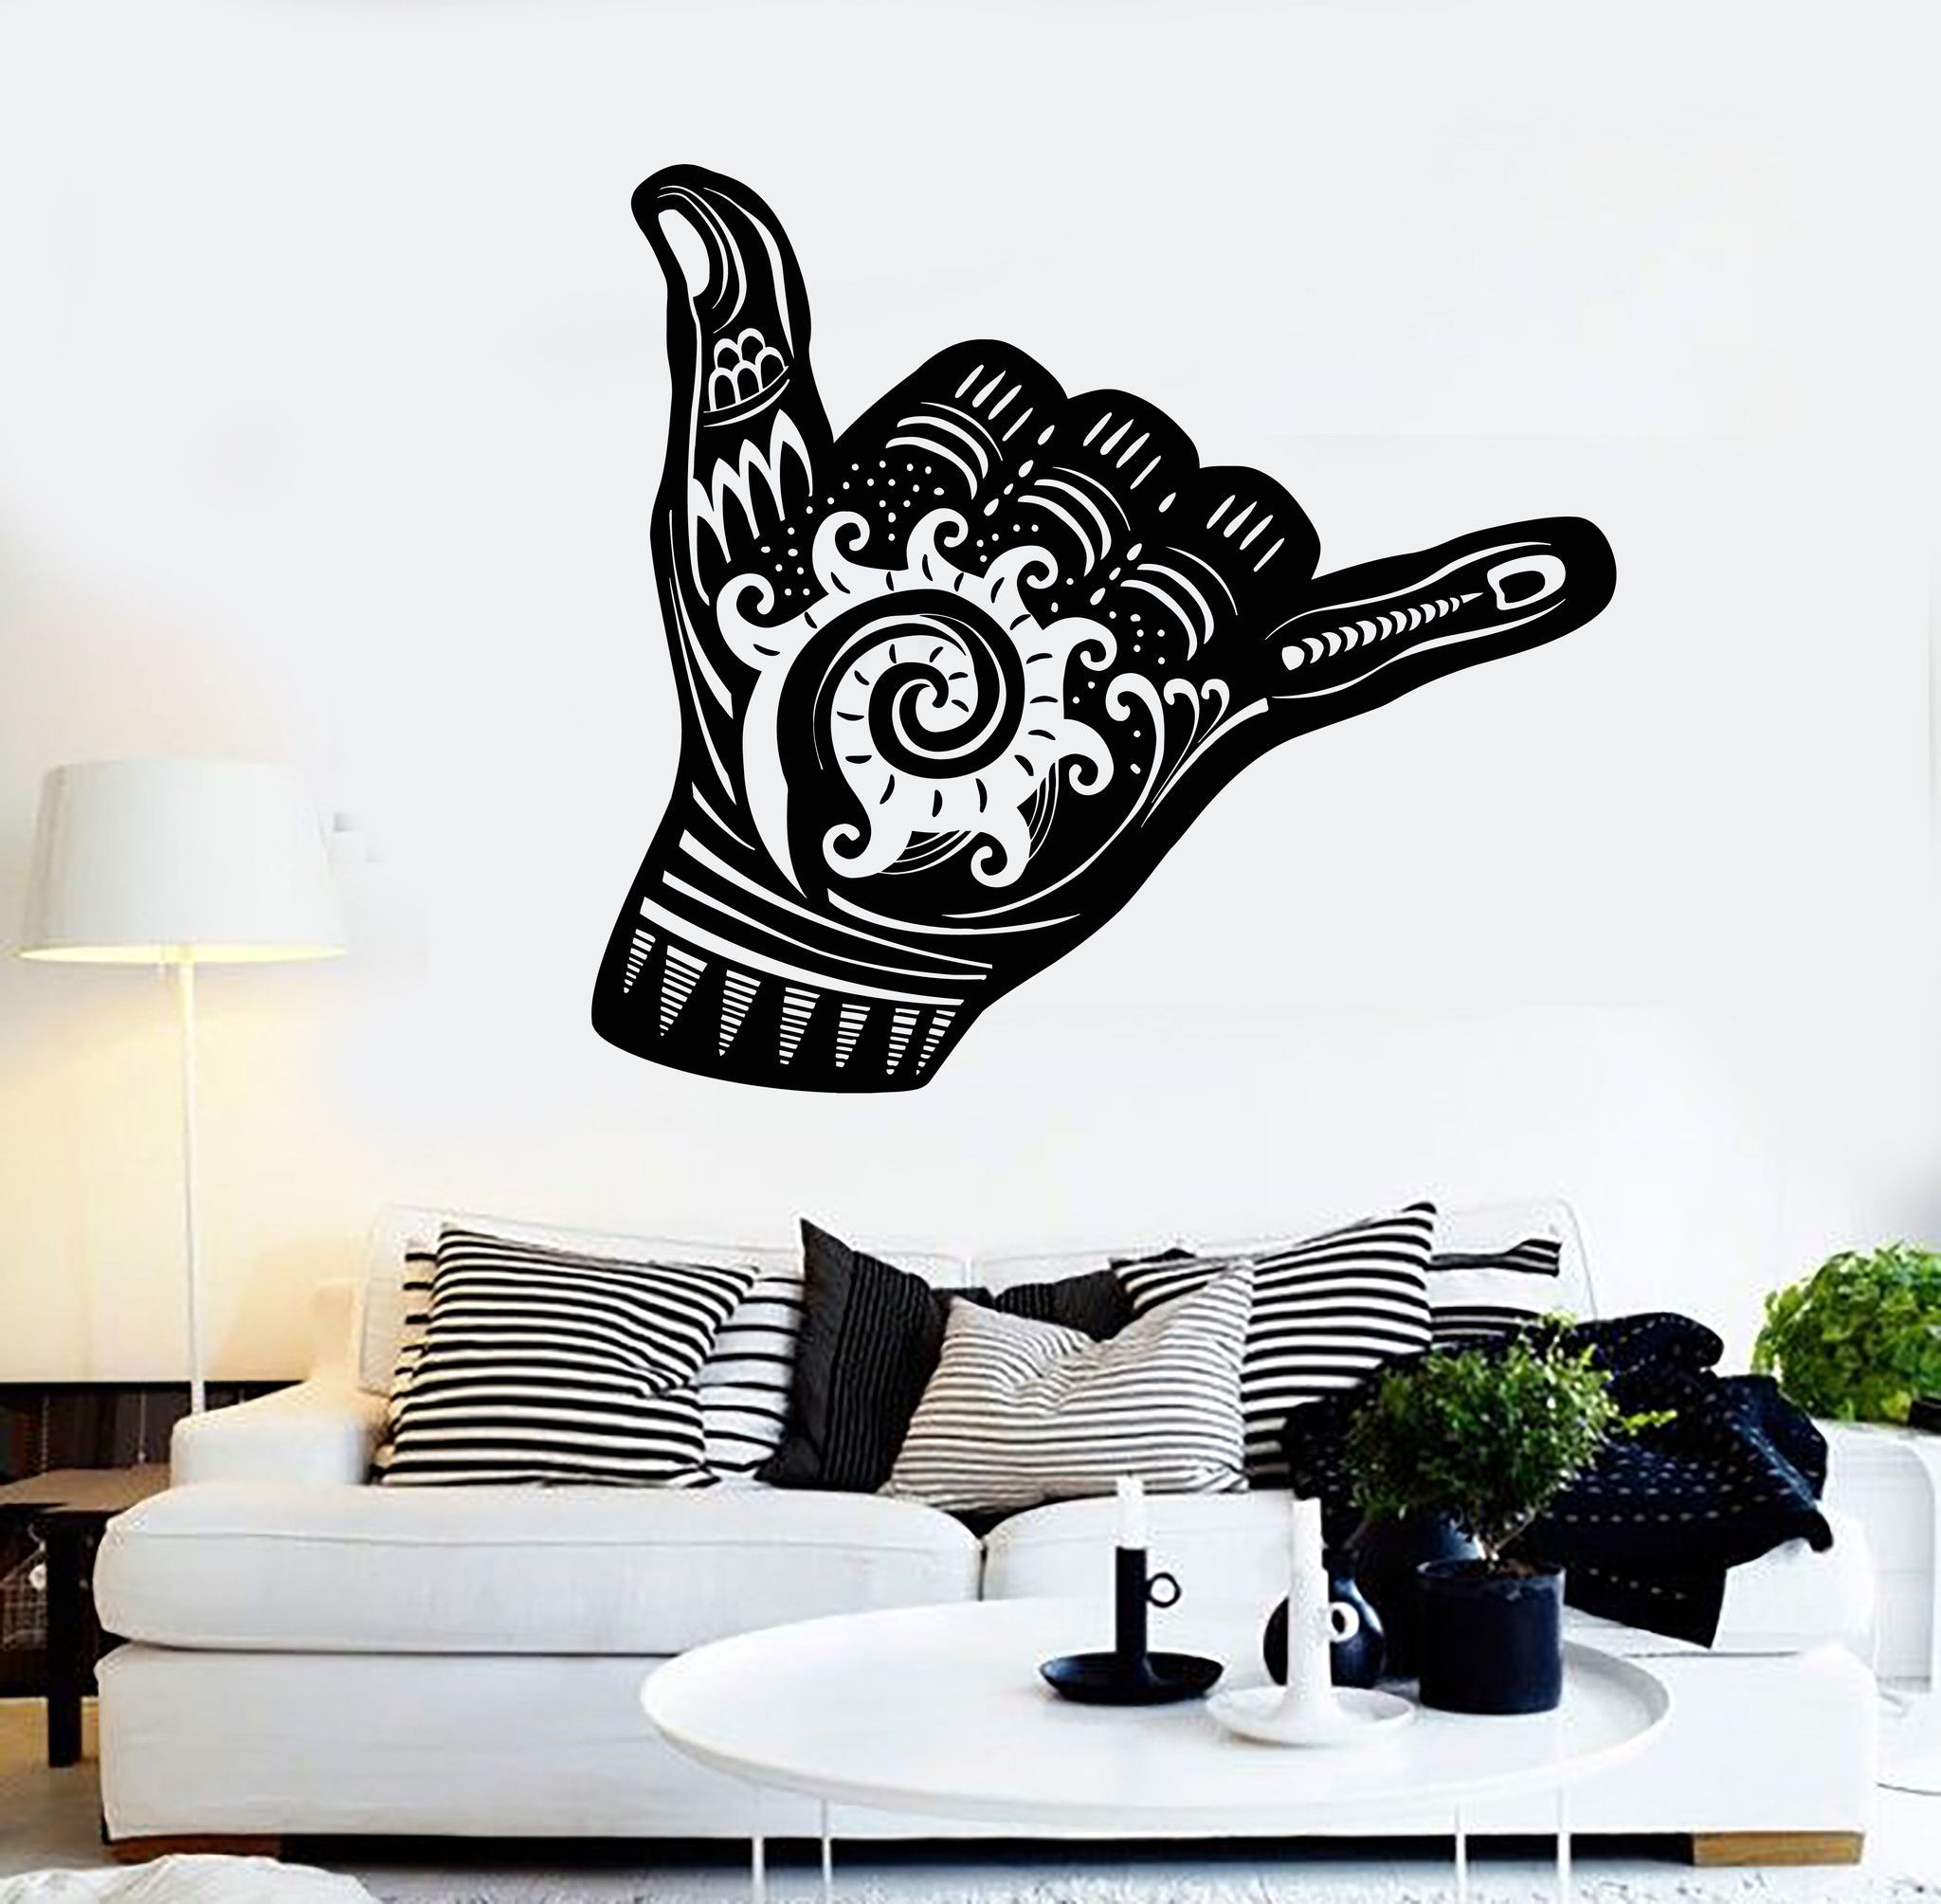 Vinyl Wall Decal Shaka Sign Hang Loose Surfing Wave Stickers Mural Unique Gift Ig4365 Shaka Sign Vinyl Wall Decals Sticker Art